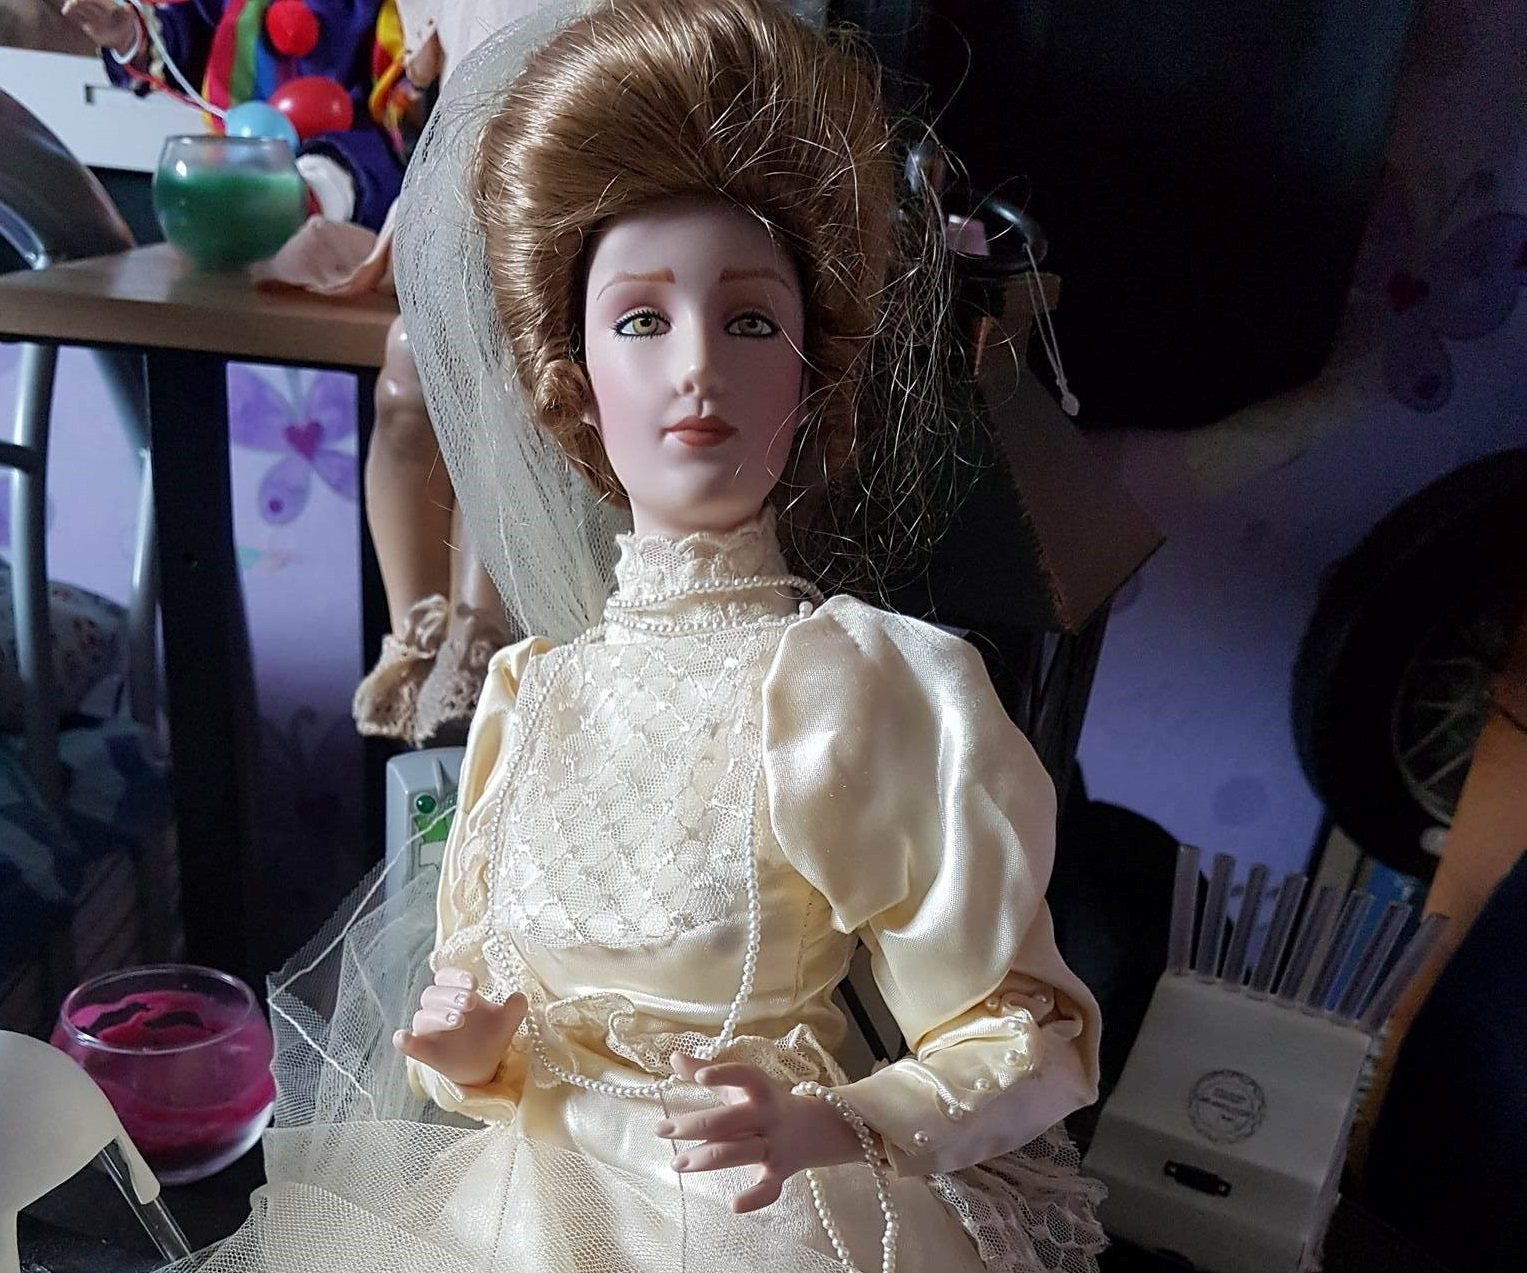 The Bridal Doll is said to give people nightmares and set off fire alarms.